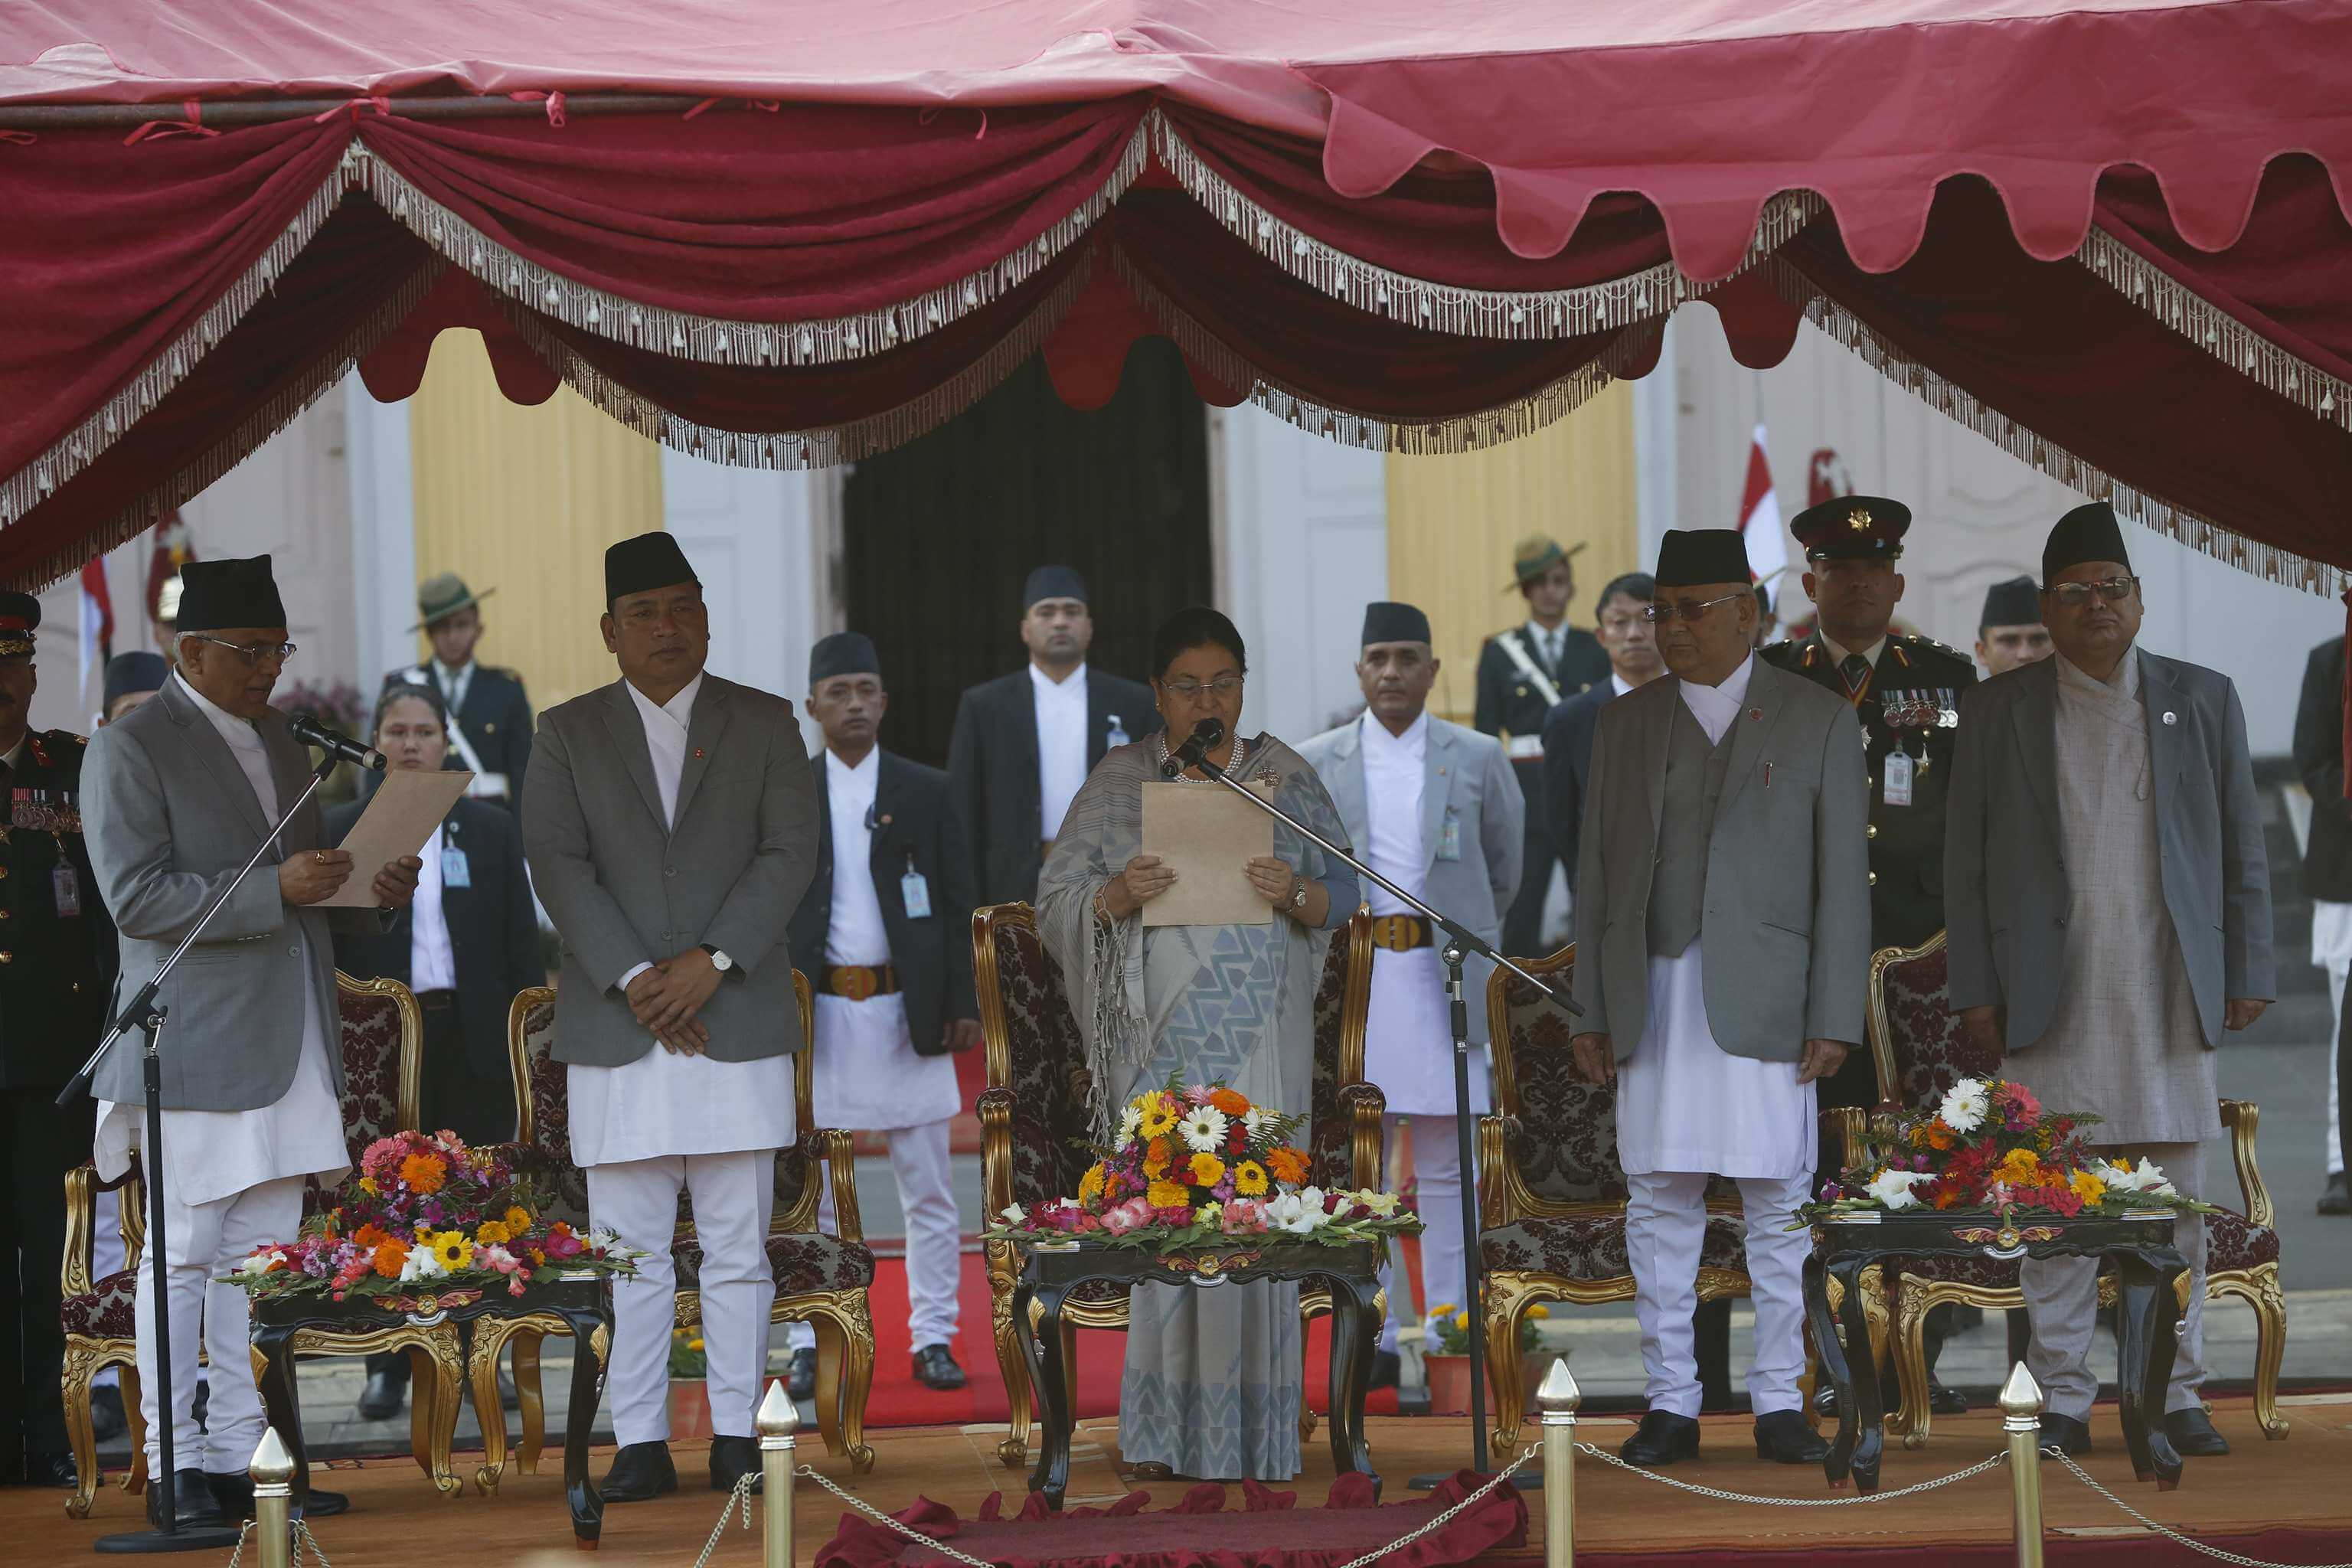 President Bidya Bhandari, re-elected as the Head of the State for a second term, takes oath of office and secrecy amidst a ceremony at Shital Niwas on Wednesday. She was administered the oath by Chief Justice Gopal Prasad Parajuli, who was dismissed by the Judicial Council just before he left for the ceremony.